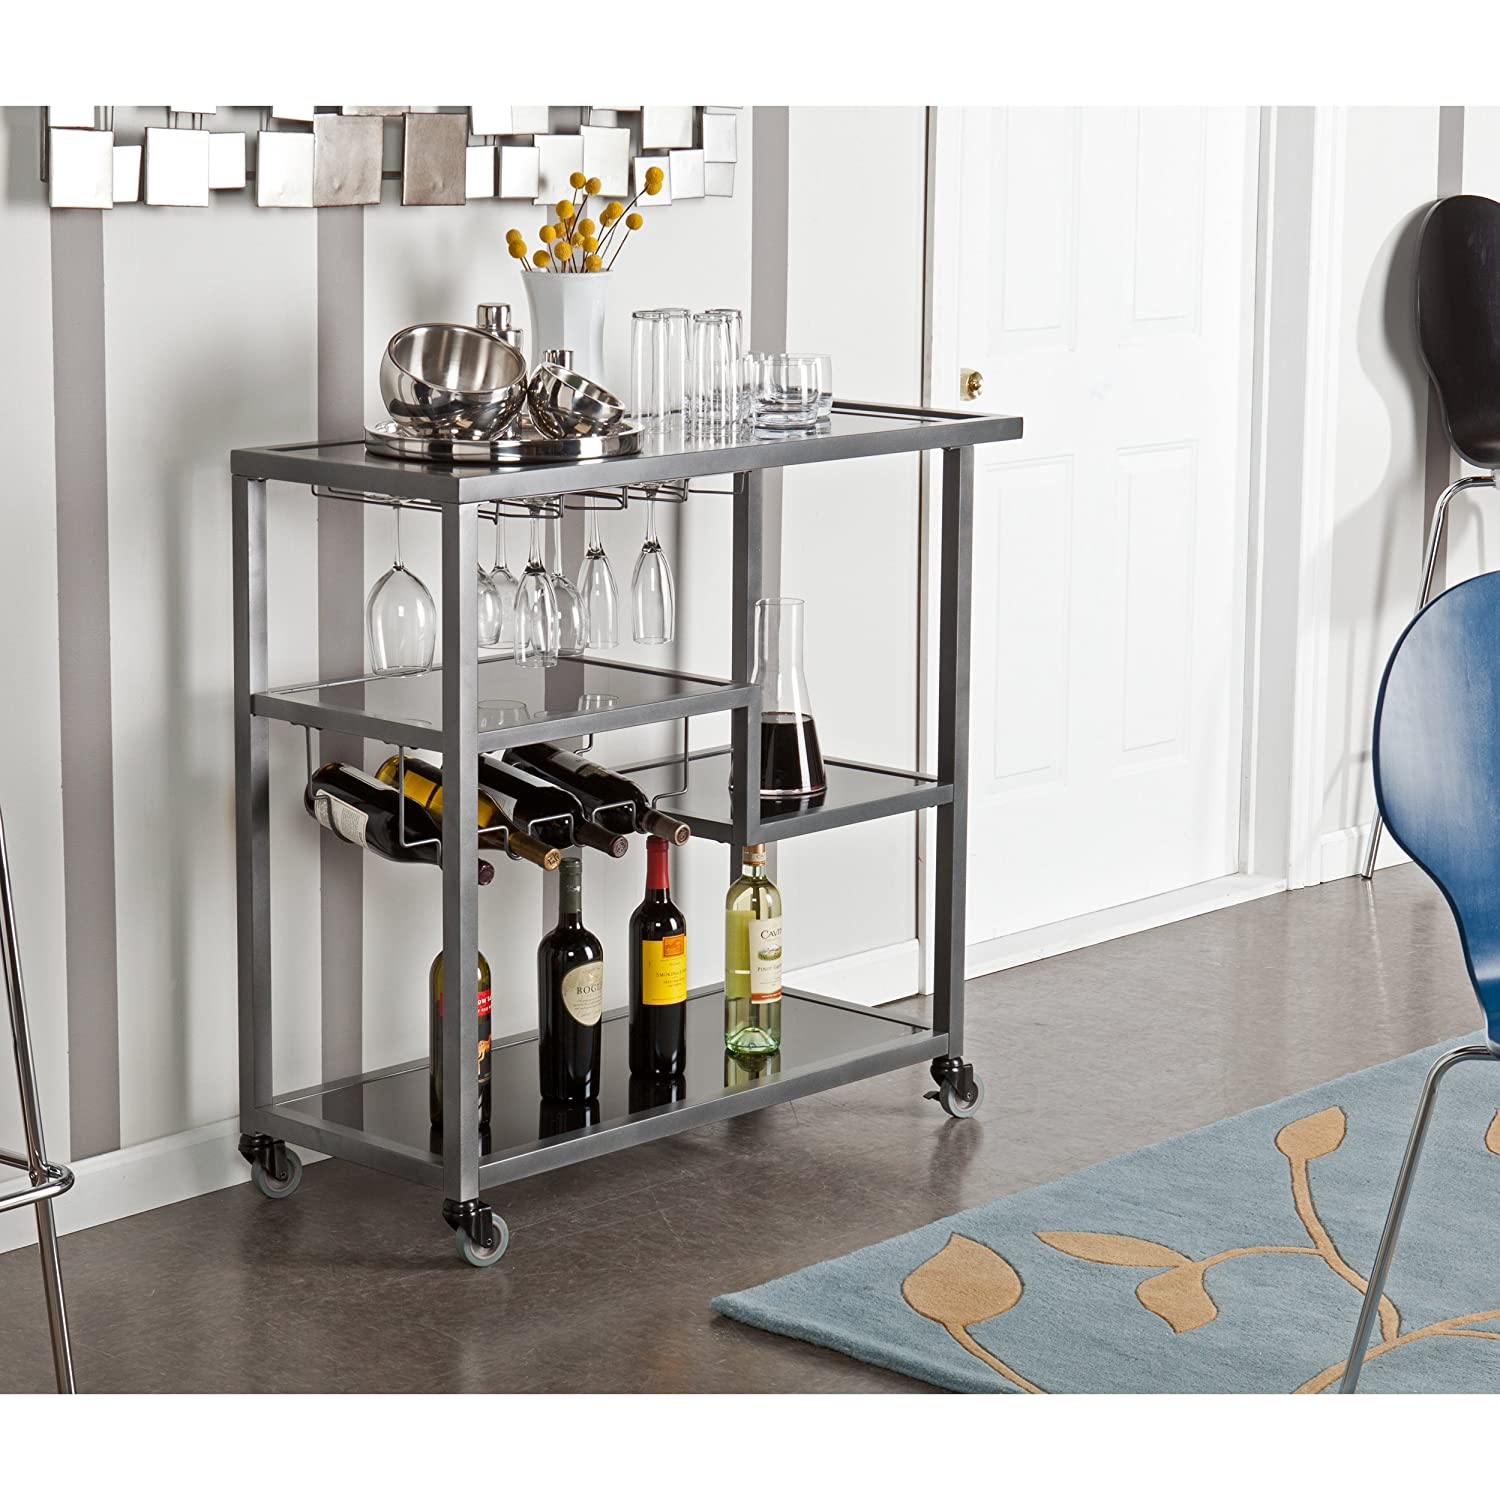 Holly & Martin Zephs Bar Cart, Gunmetal Gray Finish with Black Tempered Glass SEI HZ8810